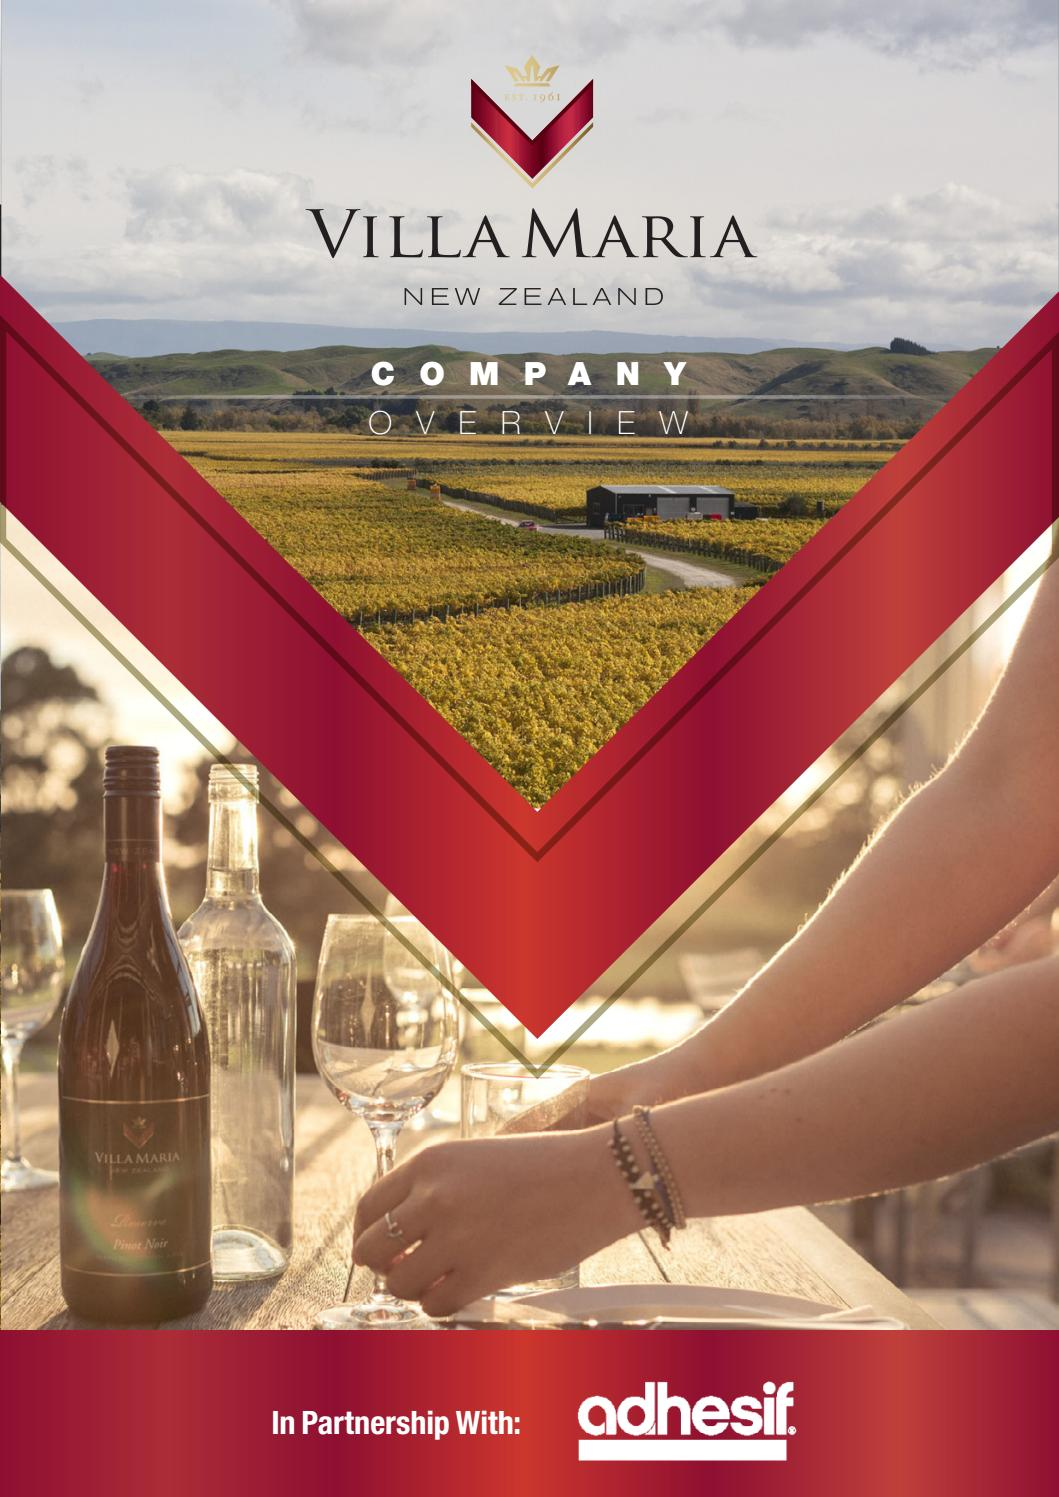 villa maria online dating Matchcom is the number one destination for online dating with more dates, more relationships, & more marriages than any other dating or personals site.